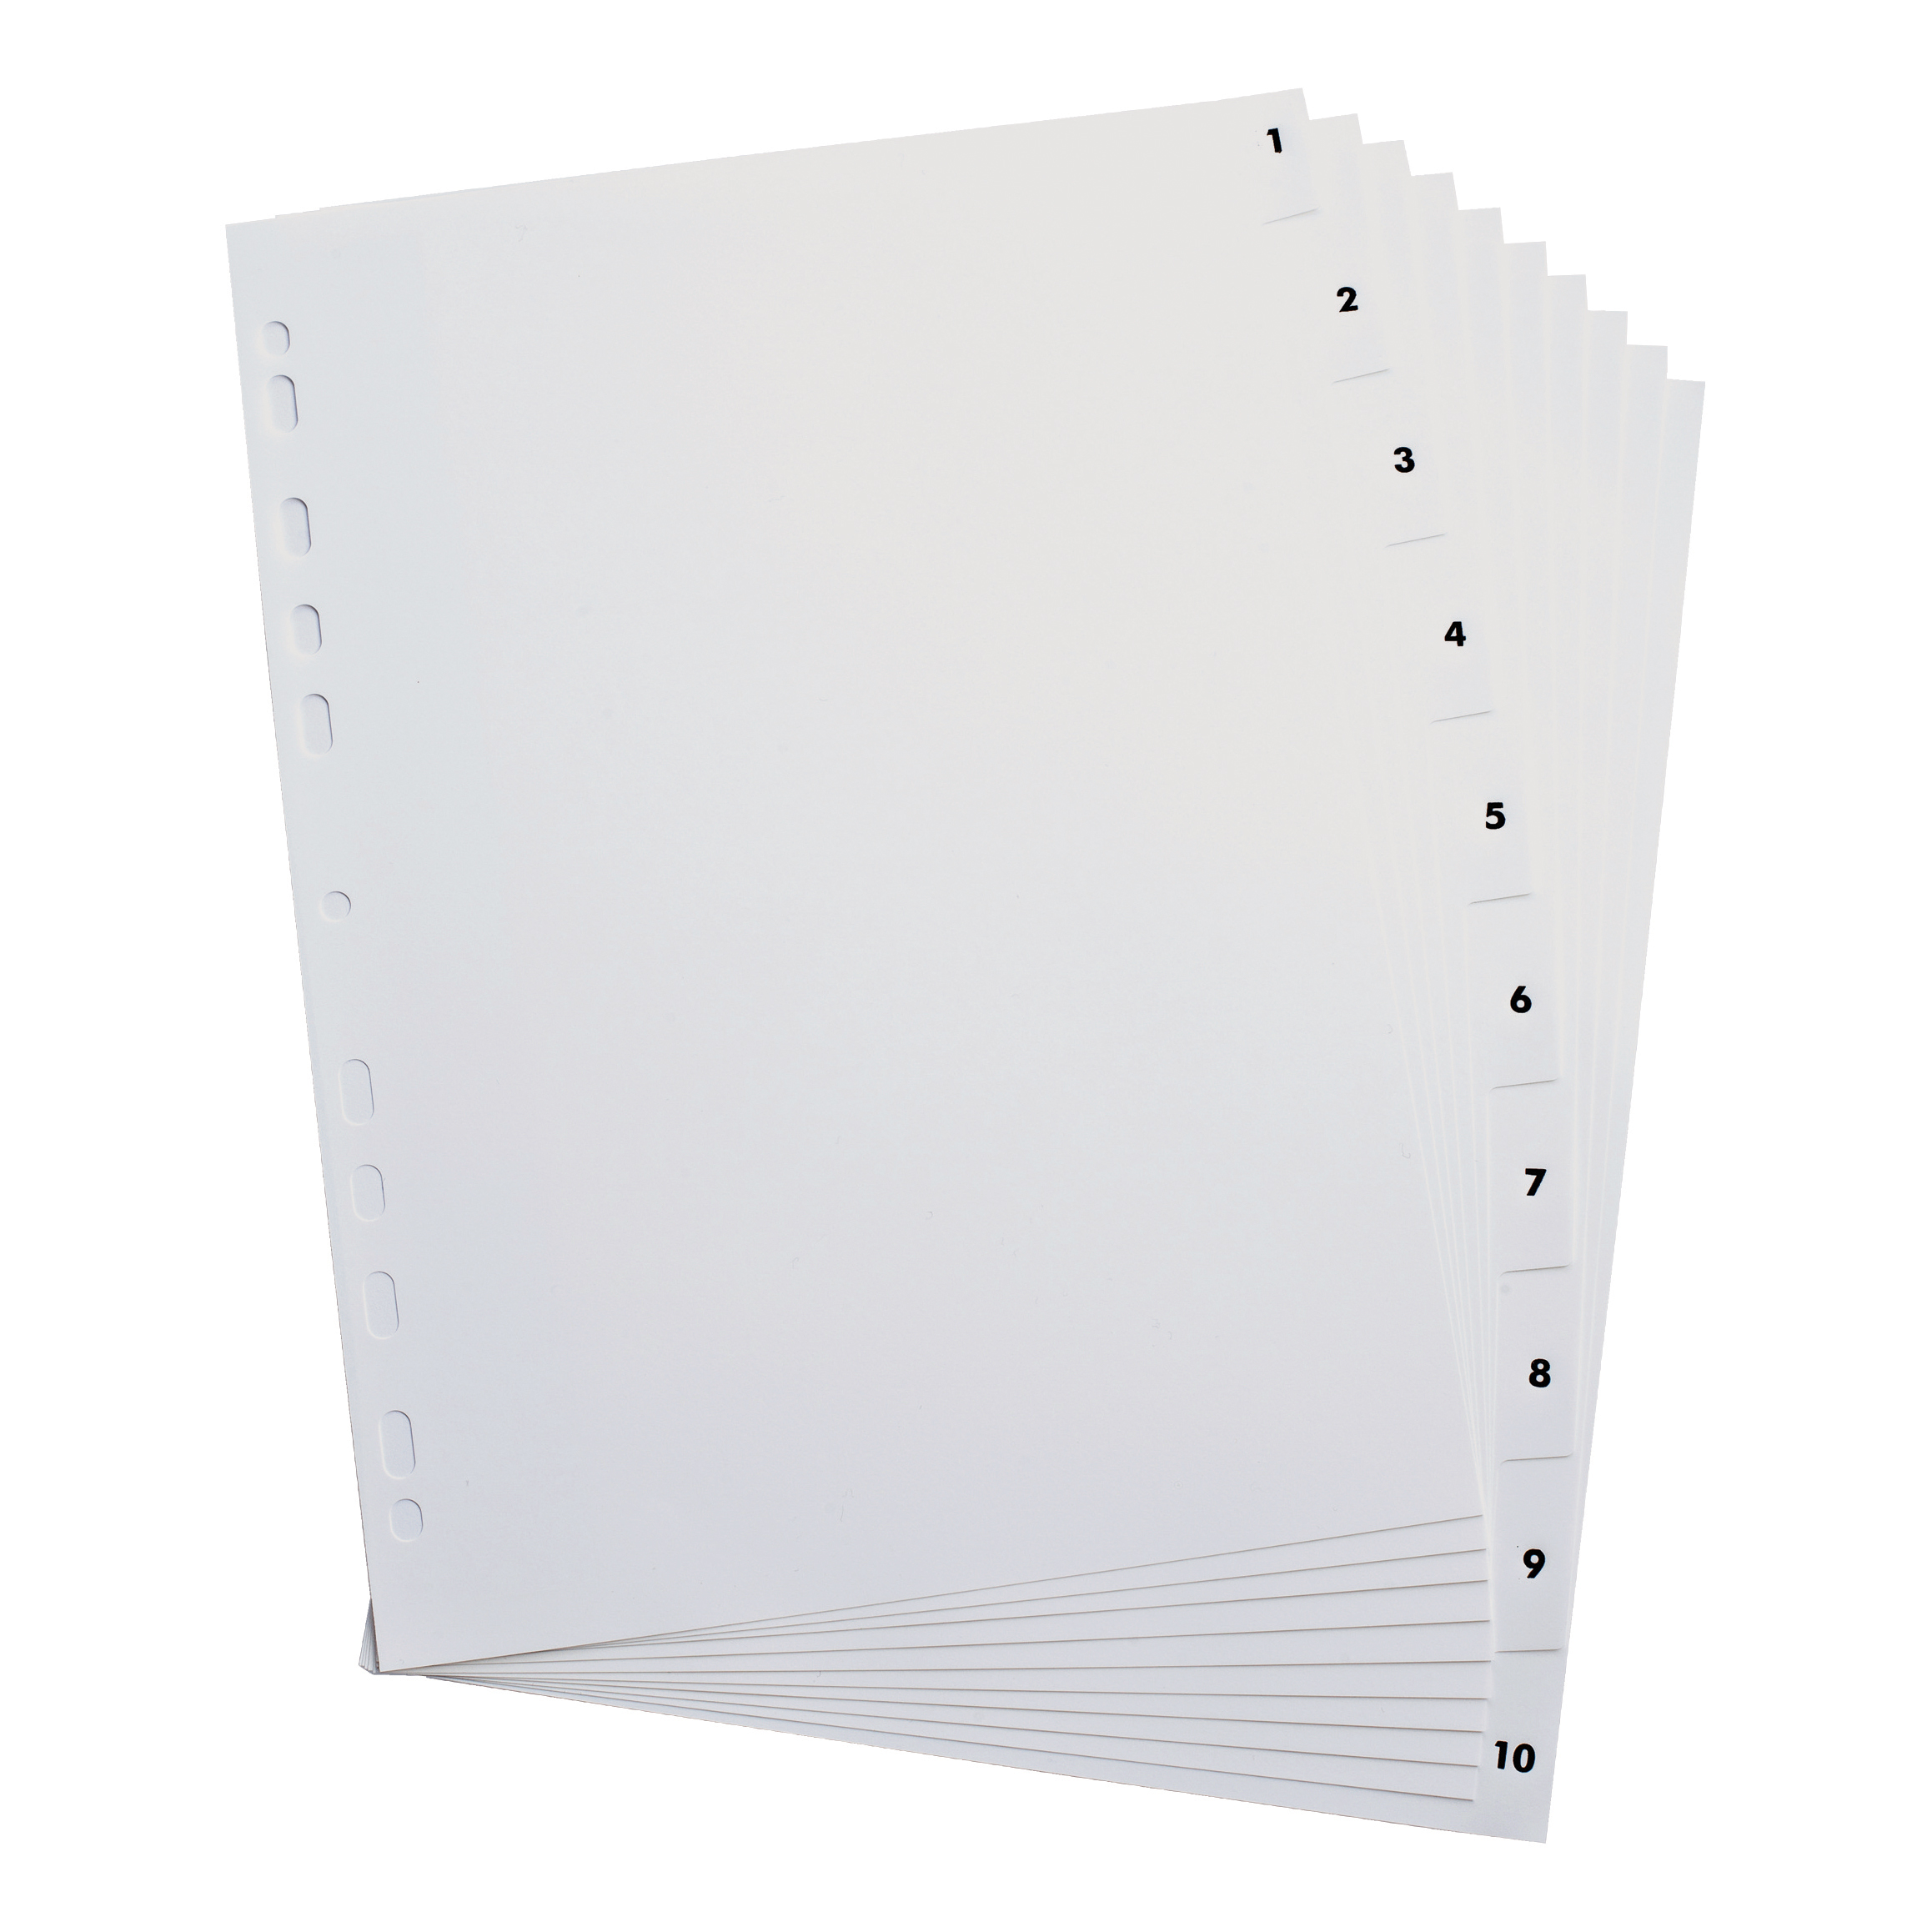 Elba Index 1-10 Polypropylene Multipunched Reinforced Holes 120 Micron A4 White Ref 100204765